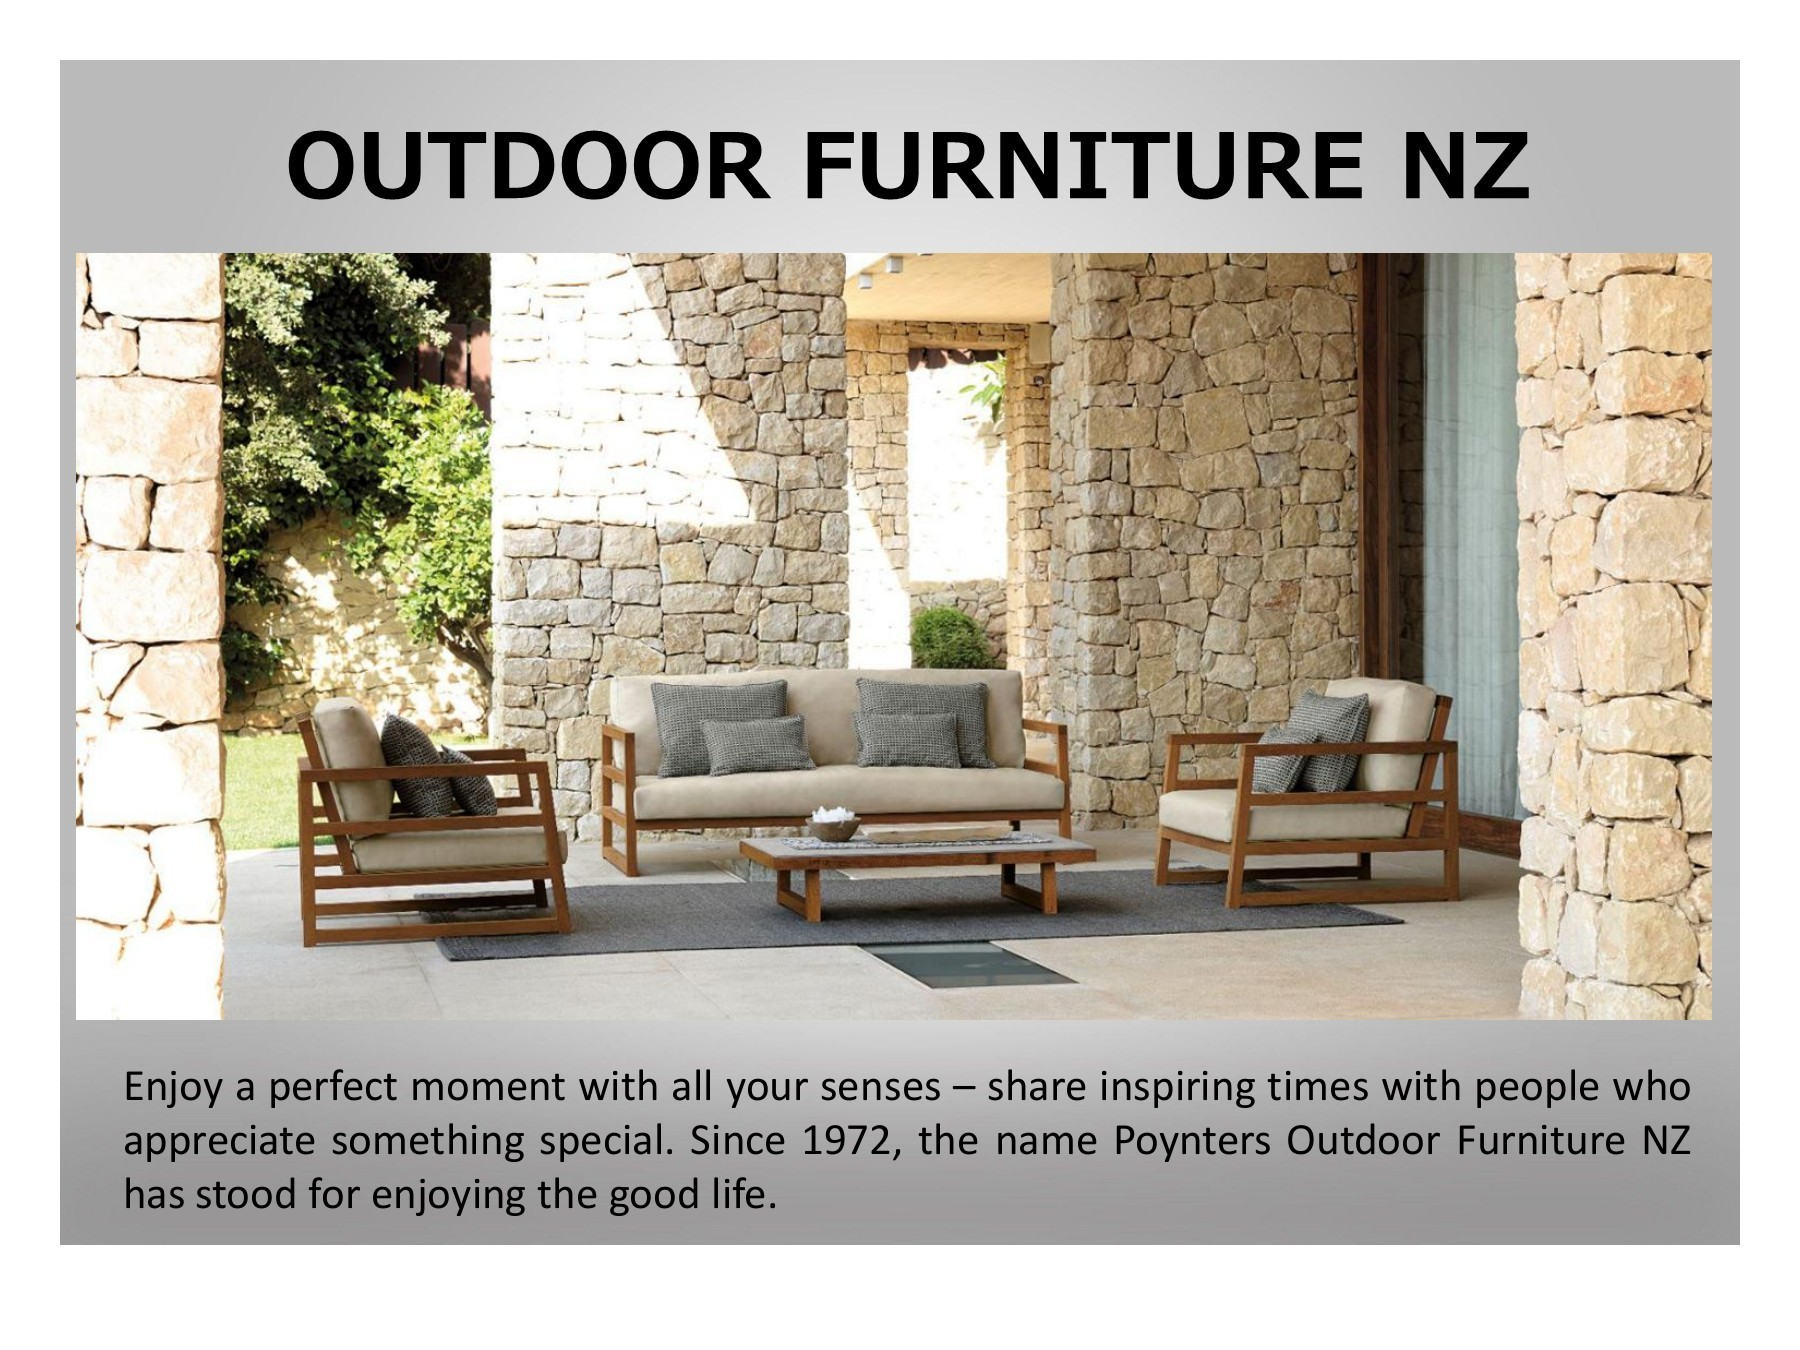 Sofa Beds Online Nz Sofa Bed Nz Pages 1 10 Text Version Fliphtml5